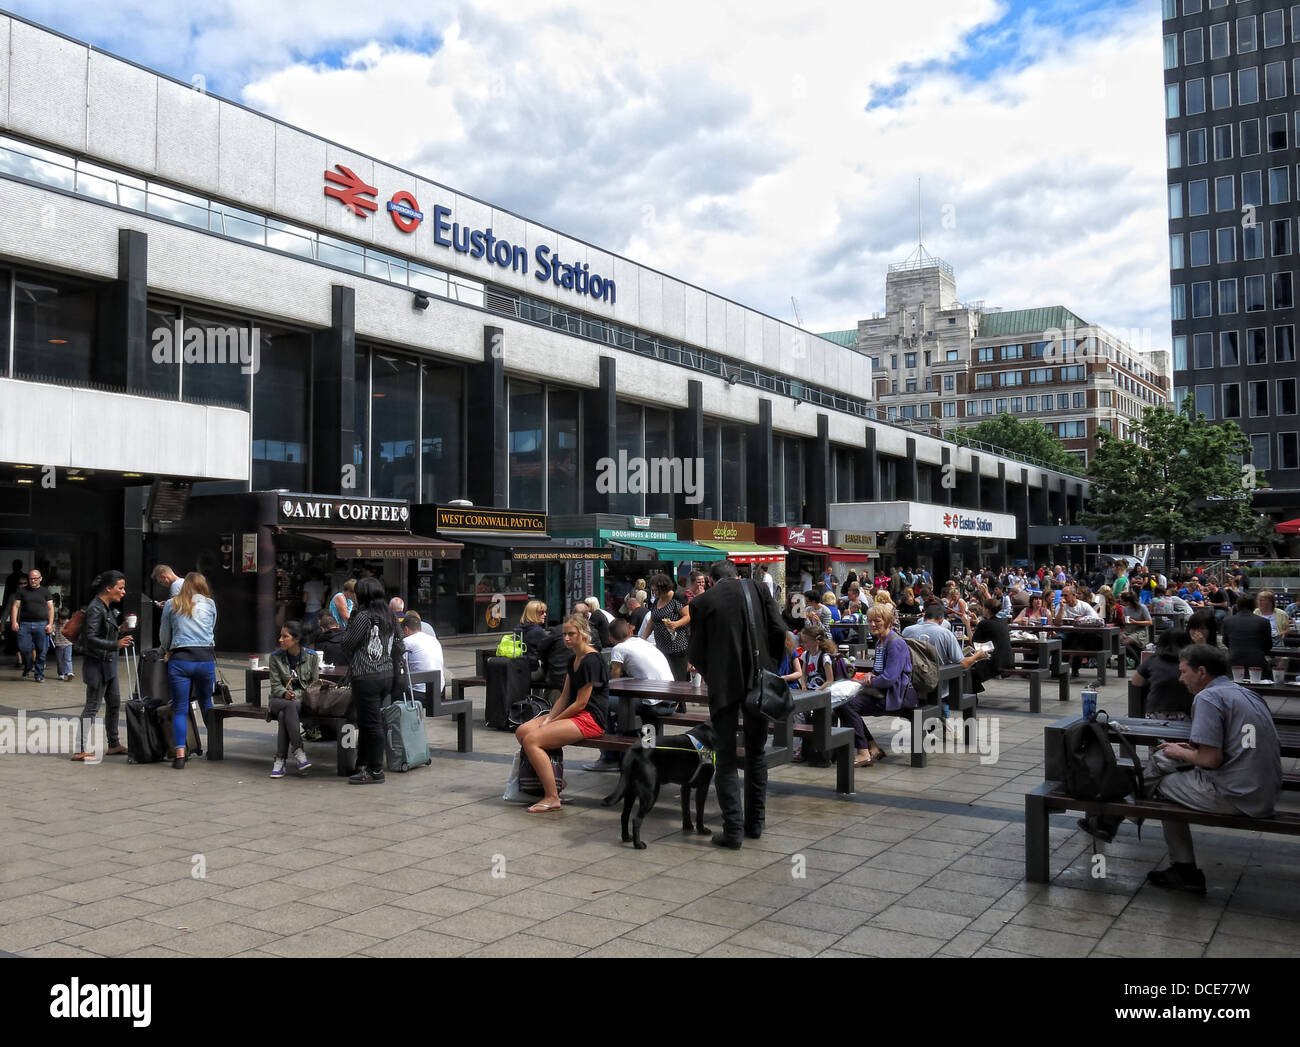 Concrete concourse and shops at Euston Station London - Stock Image